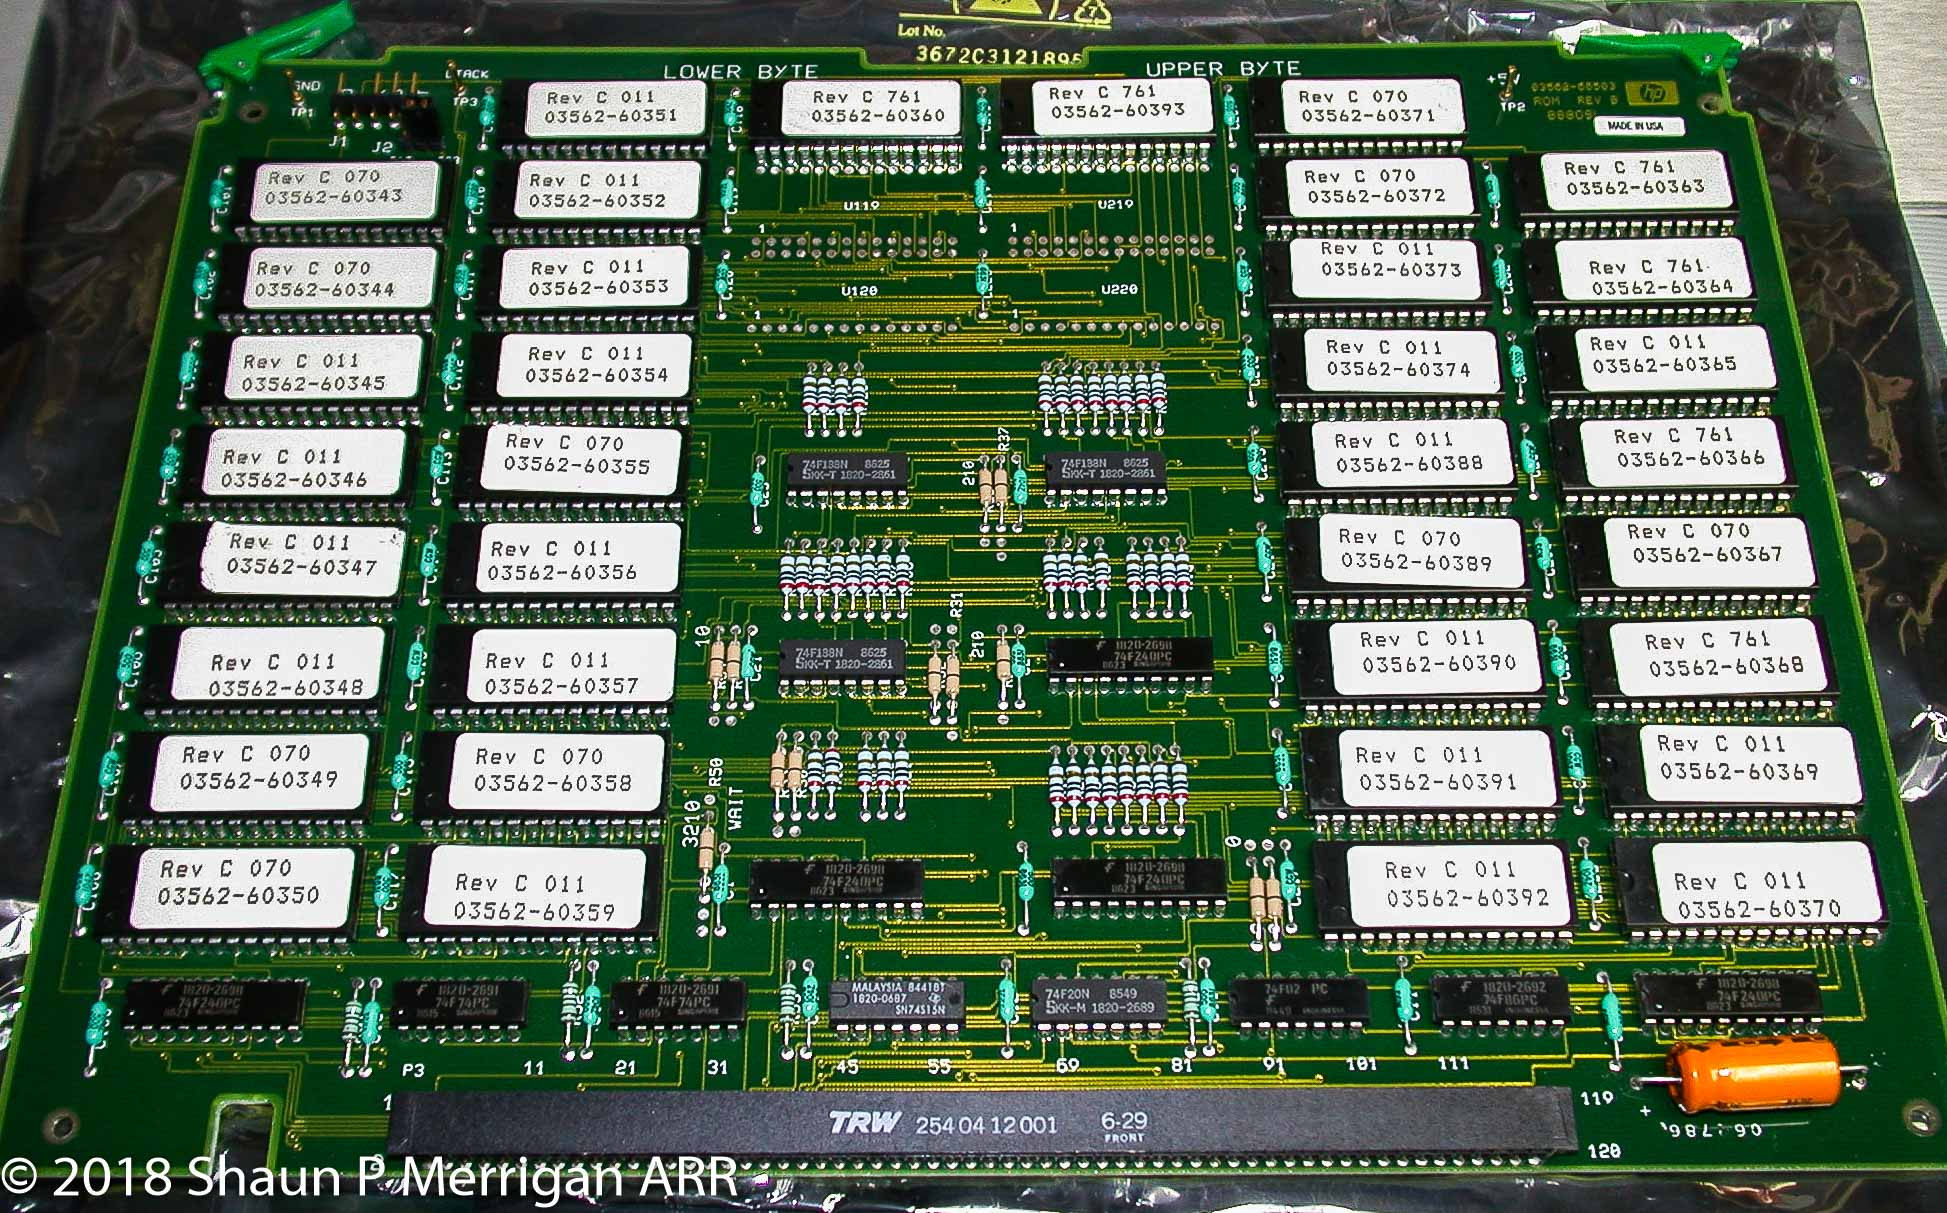 HP 3562A Rev B ROM board. The problem ROM chip is the fifth chip down in first column (U105)